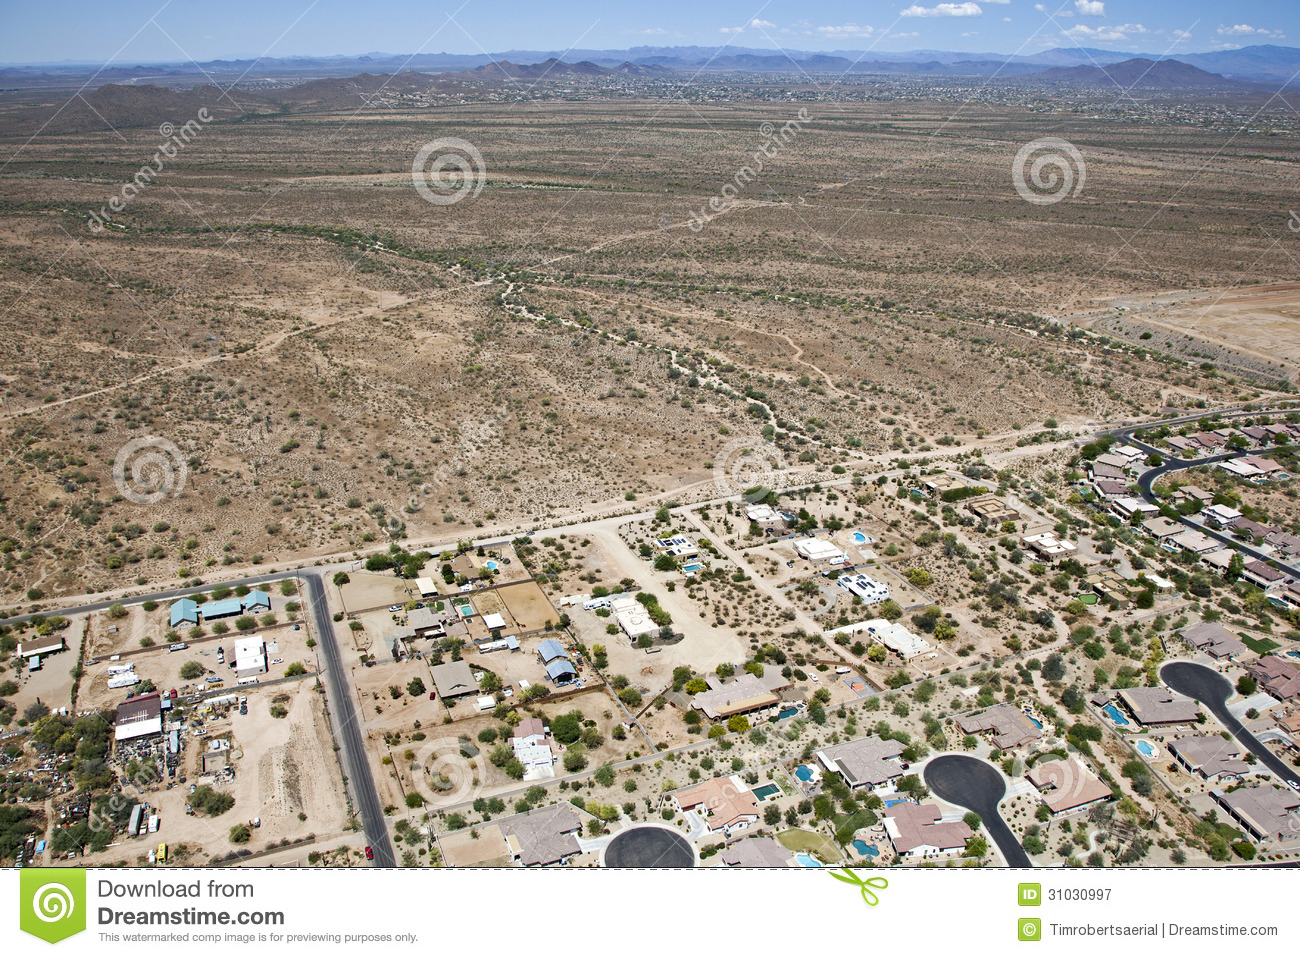 State land royalty free stock photography image 31030997 for States with free land